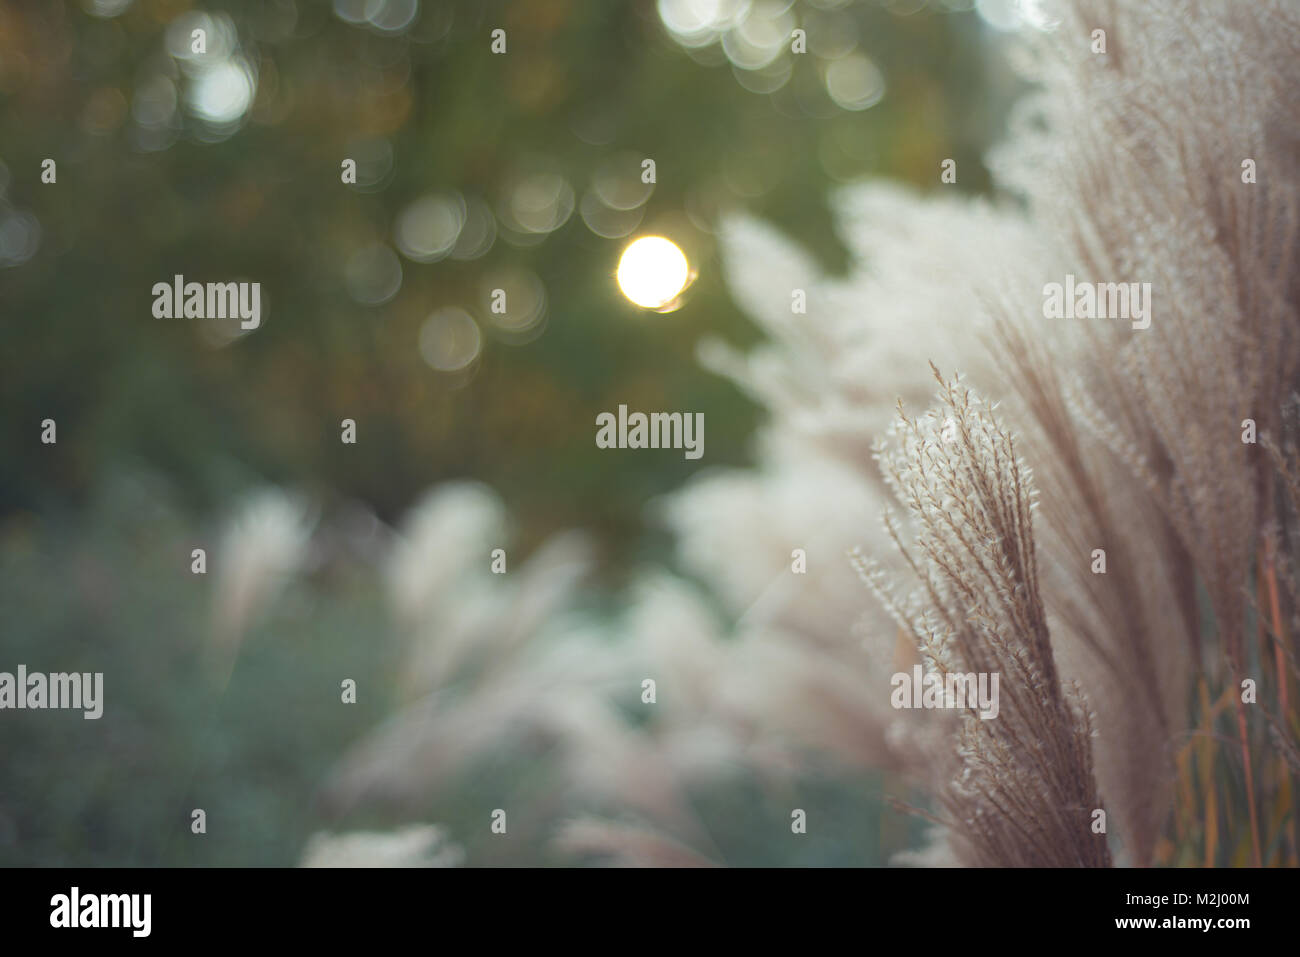 Soft textures of decorative tall grasses in the late summer afternoon sun. - Stock Image